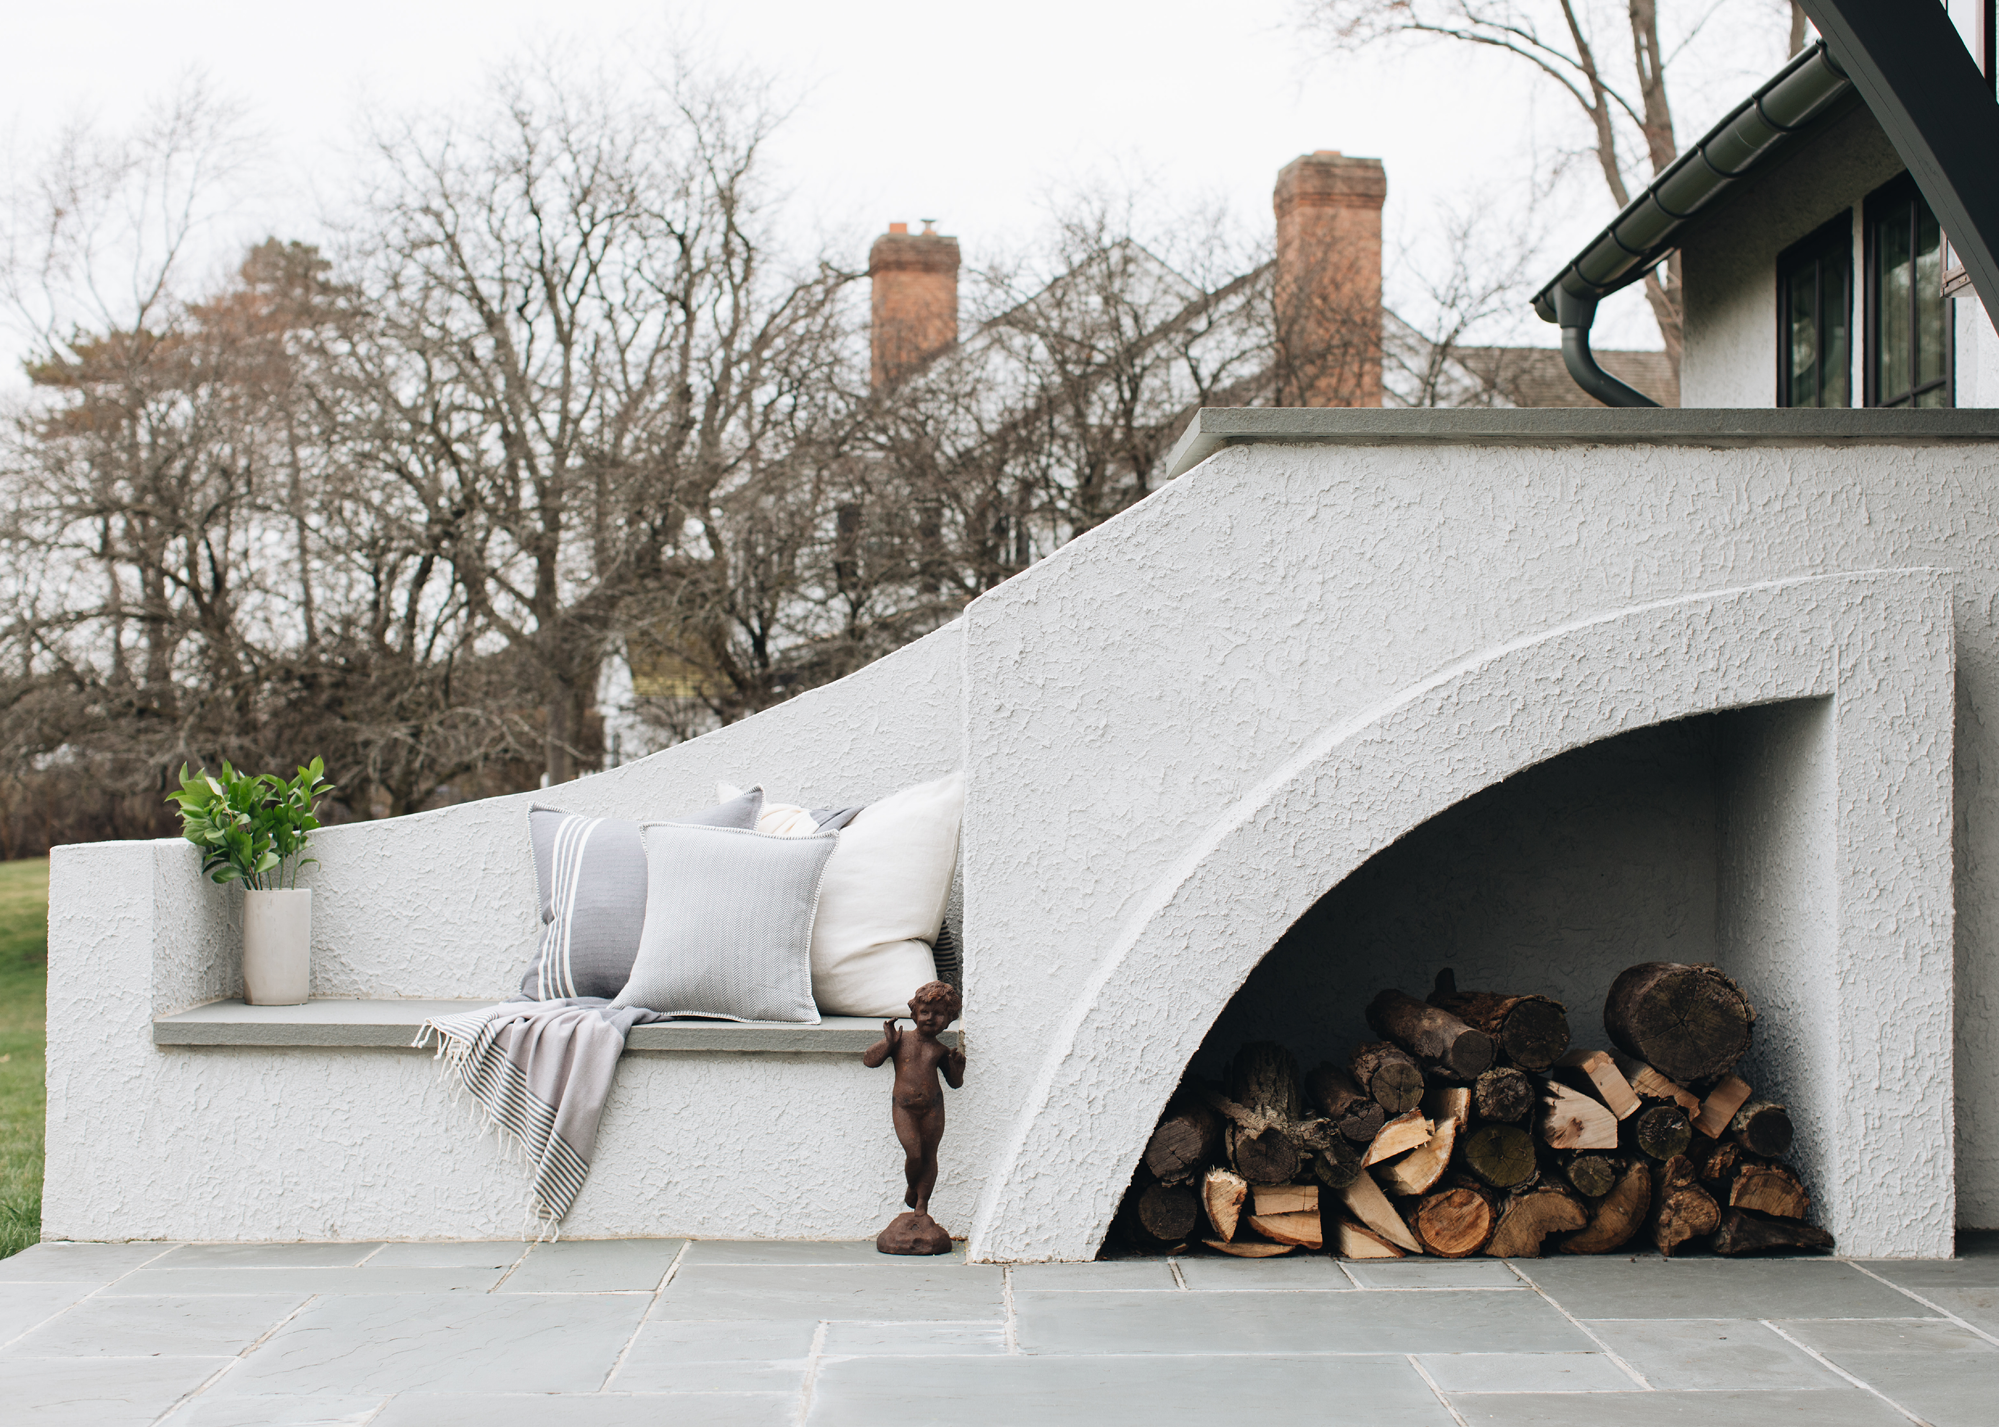 Shop The Look: Group Effort/The Porch - Pillows & Throws